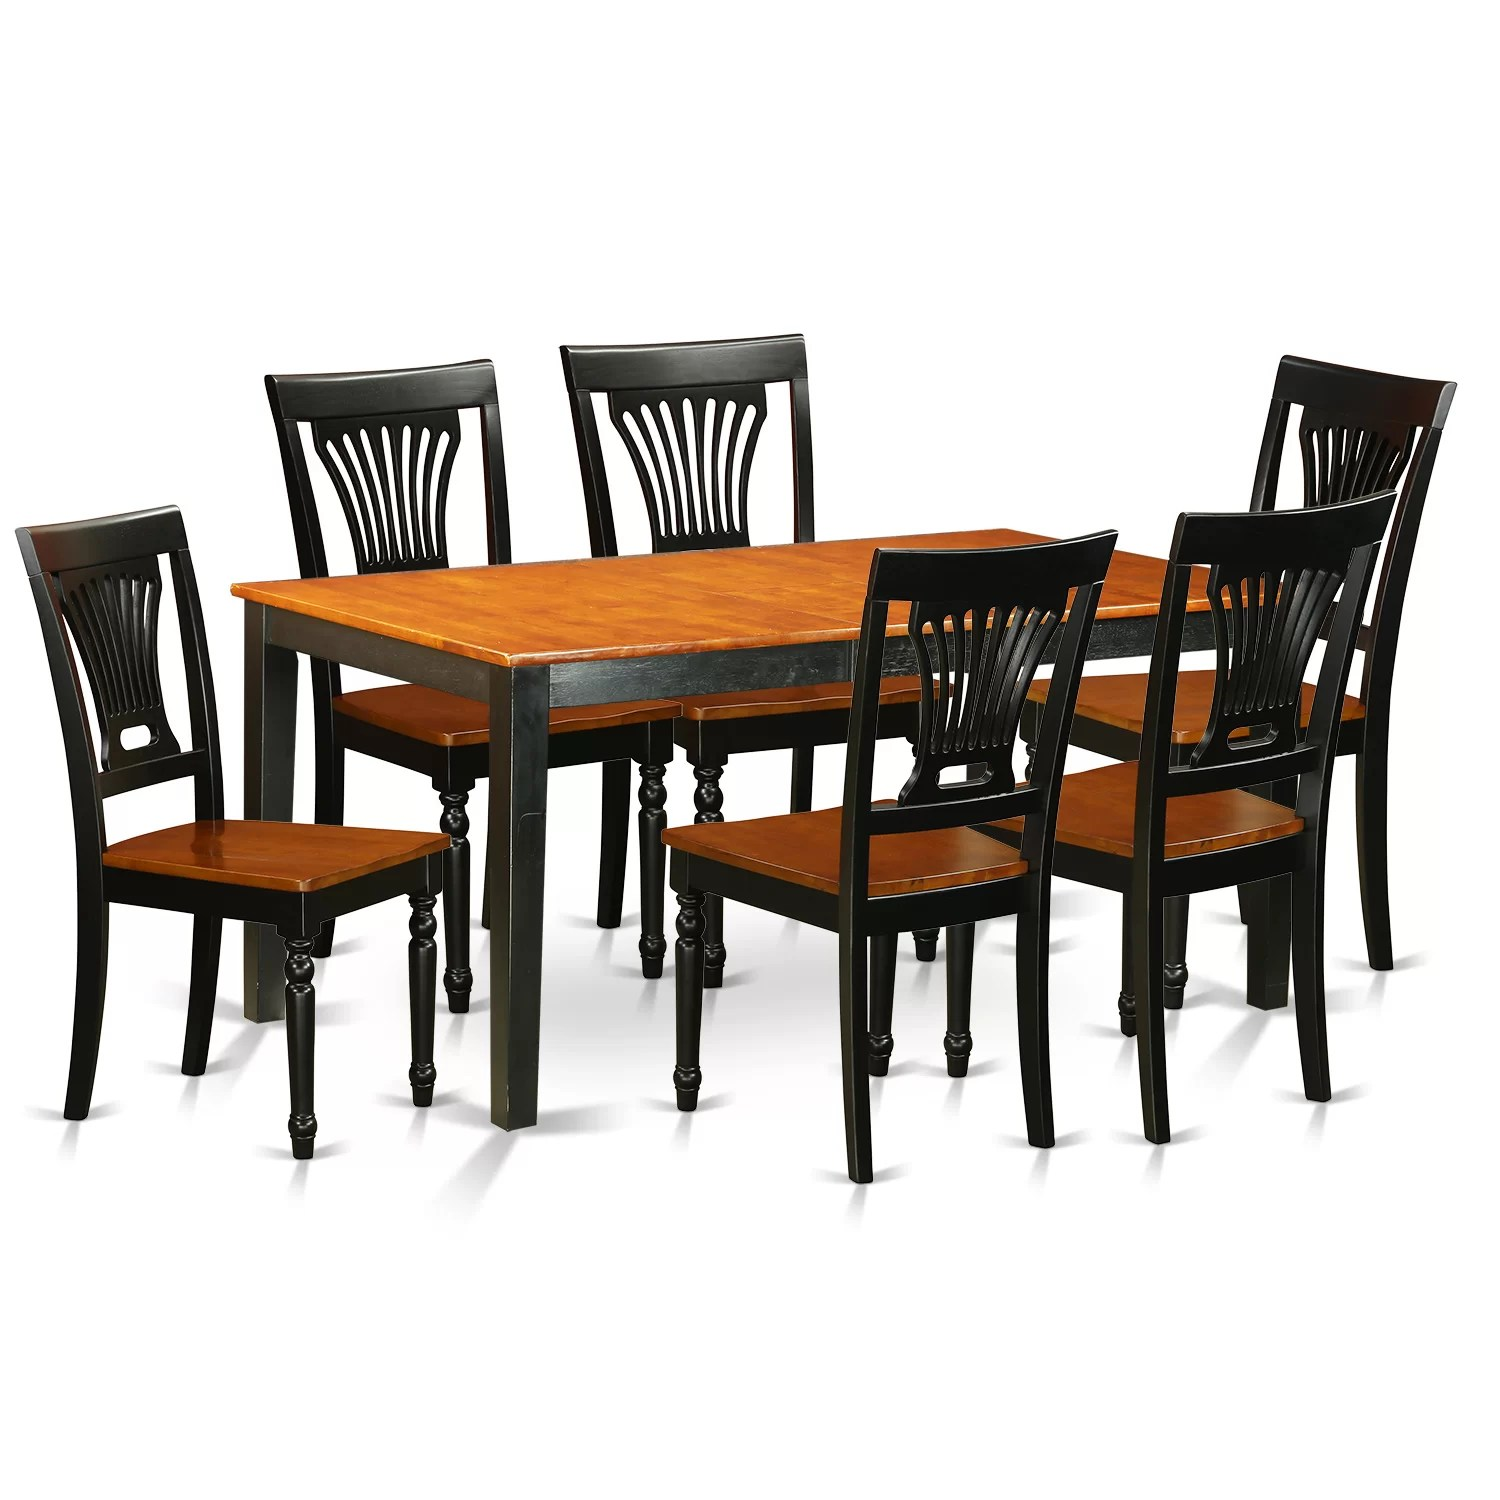 Wayfair Dining Chairs East West Nicoli 7 Piece Dining Set Wayfair